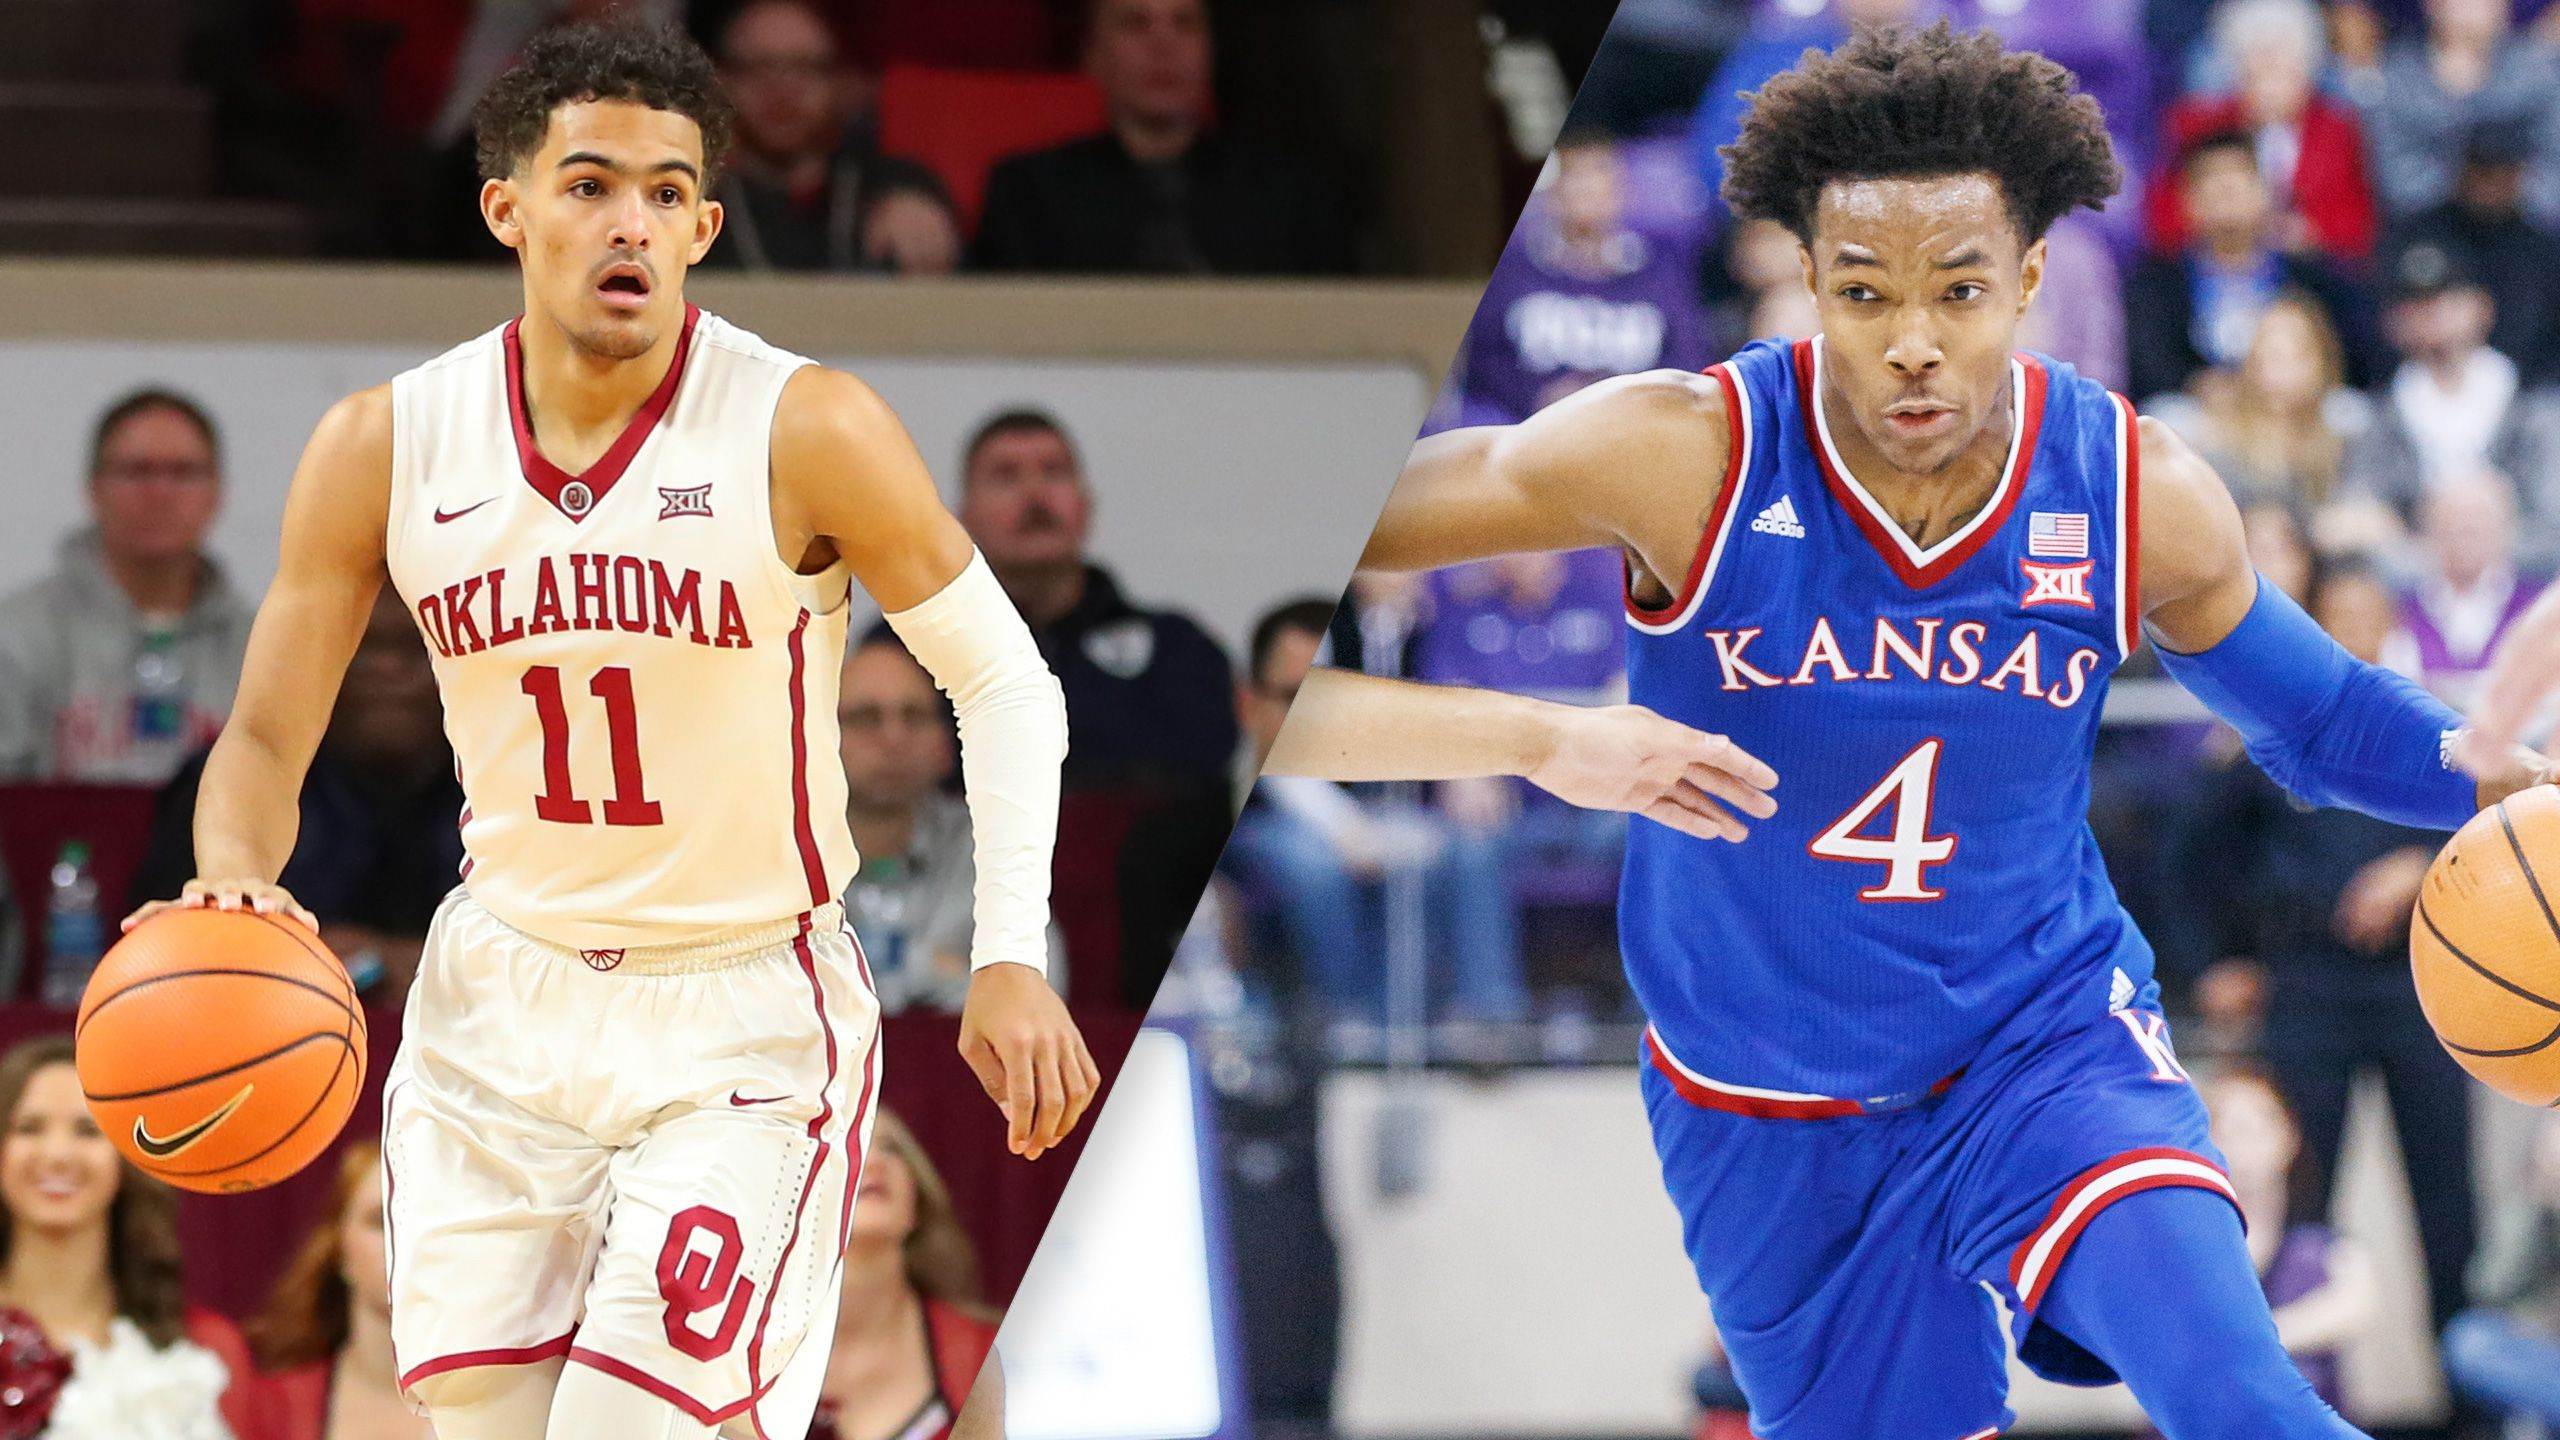 Oklahoma vs. #8 Kansas (M Basketball)